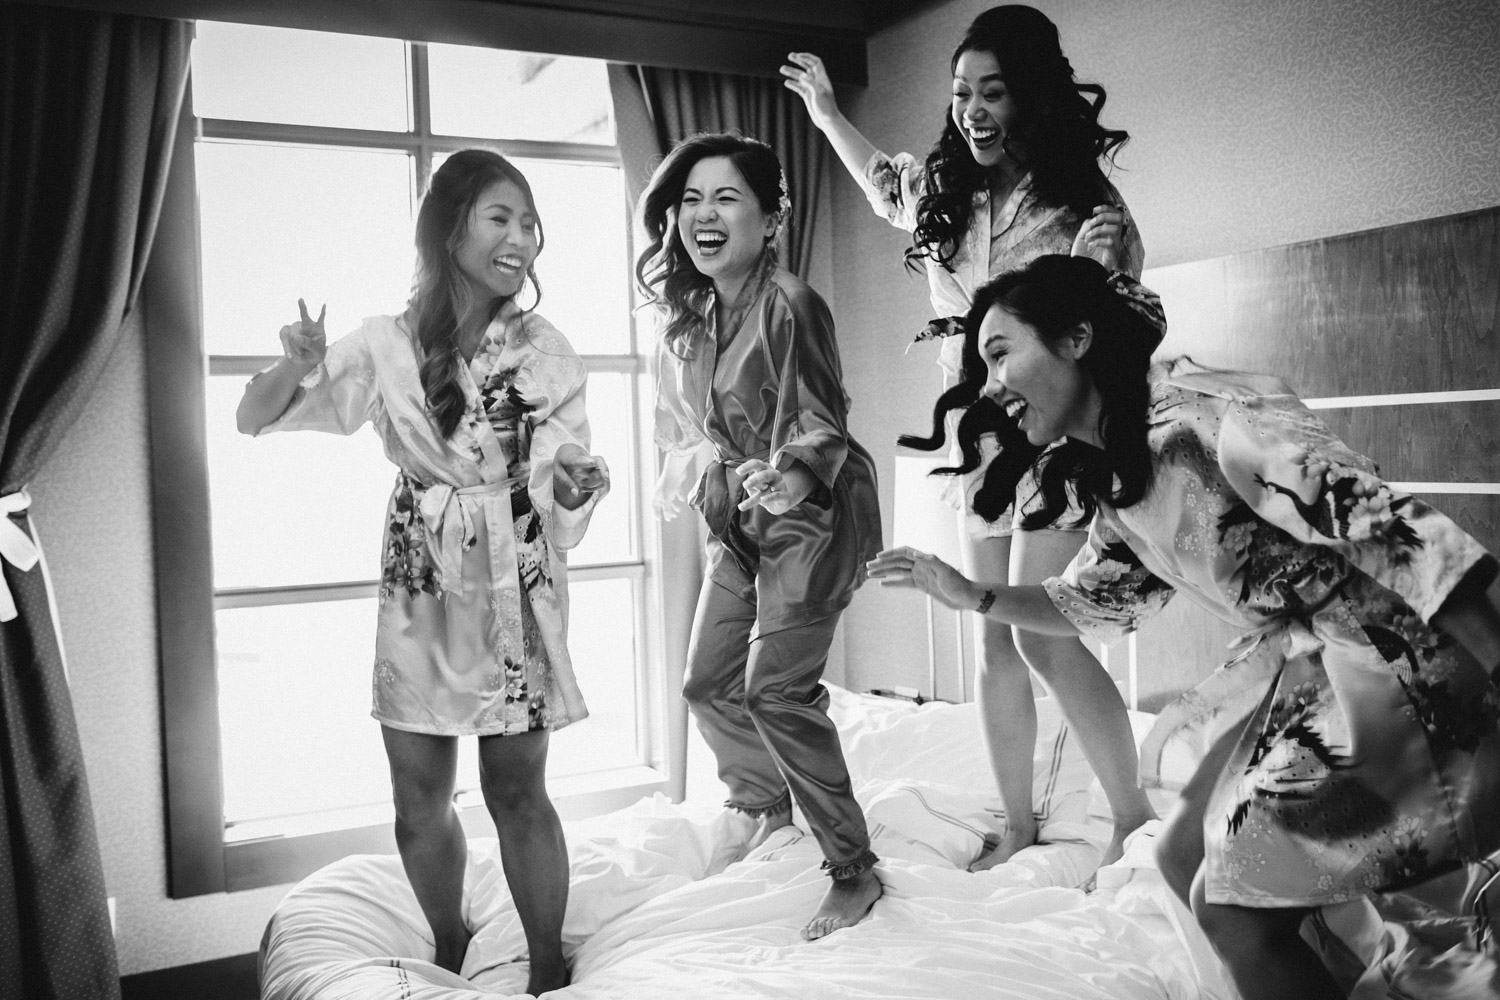 bride and bridesmaids jumping on bed candid river rock casino hotel wedding photography